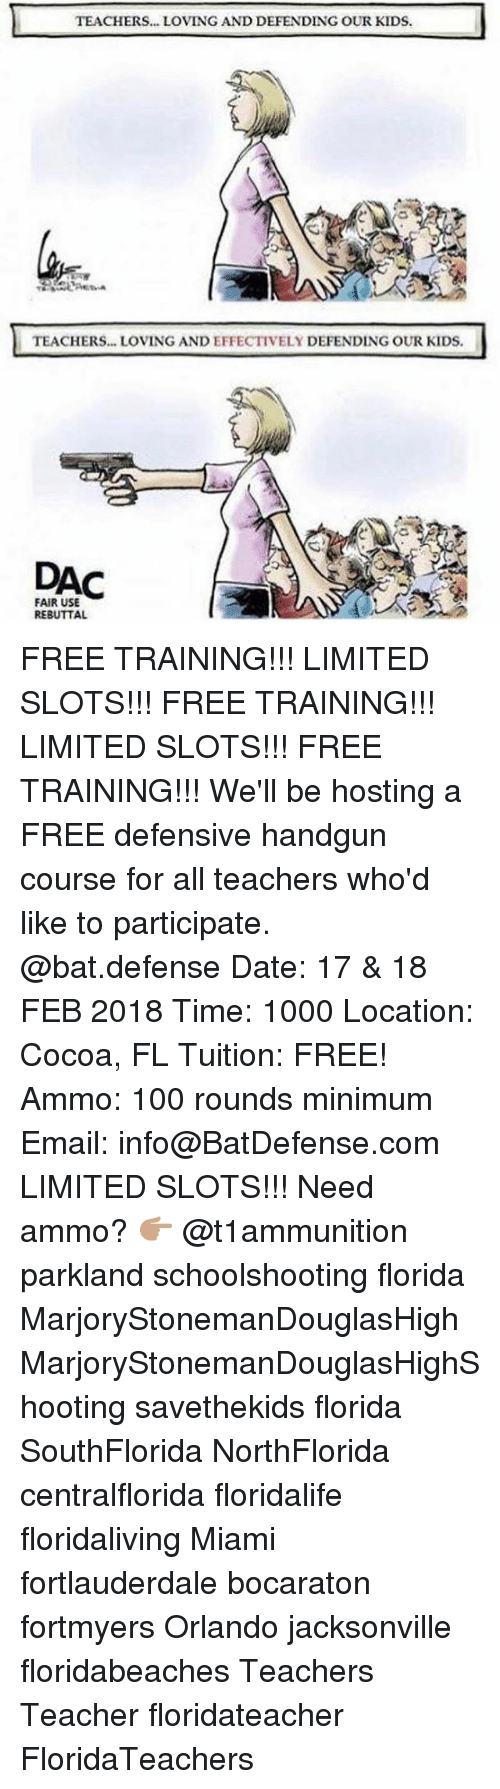 Anaconda, Memes, and Teacher: TEACHERS... LOVING AND DEFENDING OUR KIDS  TEACHERS... LOVING AND EFFECTIVELY DEFENDING OUR KIDS.  DAC  FAIR USE  REBUTTAL FREE TRAINING!!! LIMITED SLOTS!!! FREE TRAINING!!! LIMITED SLOTS!!! FREE TRAINING!!! We'll be hosting a FREE defensive handgun course for all teachers who'd like to participate. @bat.defense Date: 17 & 18 FEB 2018 Time: 1000 Location: Cocoa, FL Tuition: FREE! Ammo: 100 rounds minimum Email: info@BatDefense.com LIMITED SLOTS!!! Need ammo? 👉🏽 @t1ammunition parkland schoolshooting florida MarjoryStonemanDouglasHigh MarjoryStonemanDouglasHighShooting savethekids florida SouthFlorida NorthFlorida centralflorida floridalife floridaliving Miami fortlauderdale bocaraton fortmyers Orlando jacksonville floridabeaches Teachers Teacher floridateacher FloridaTeachers